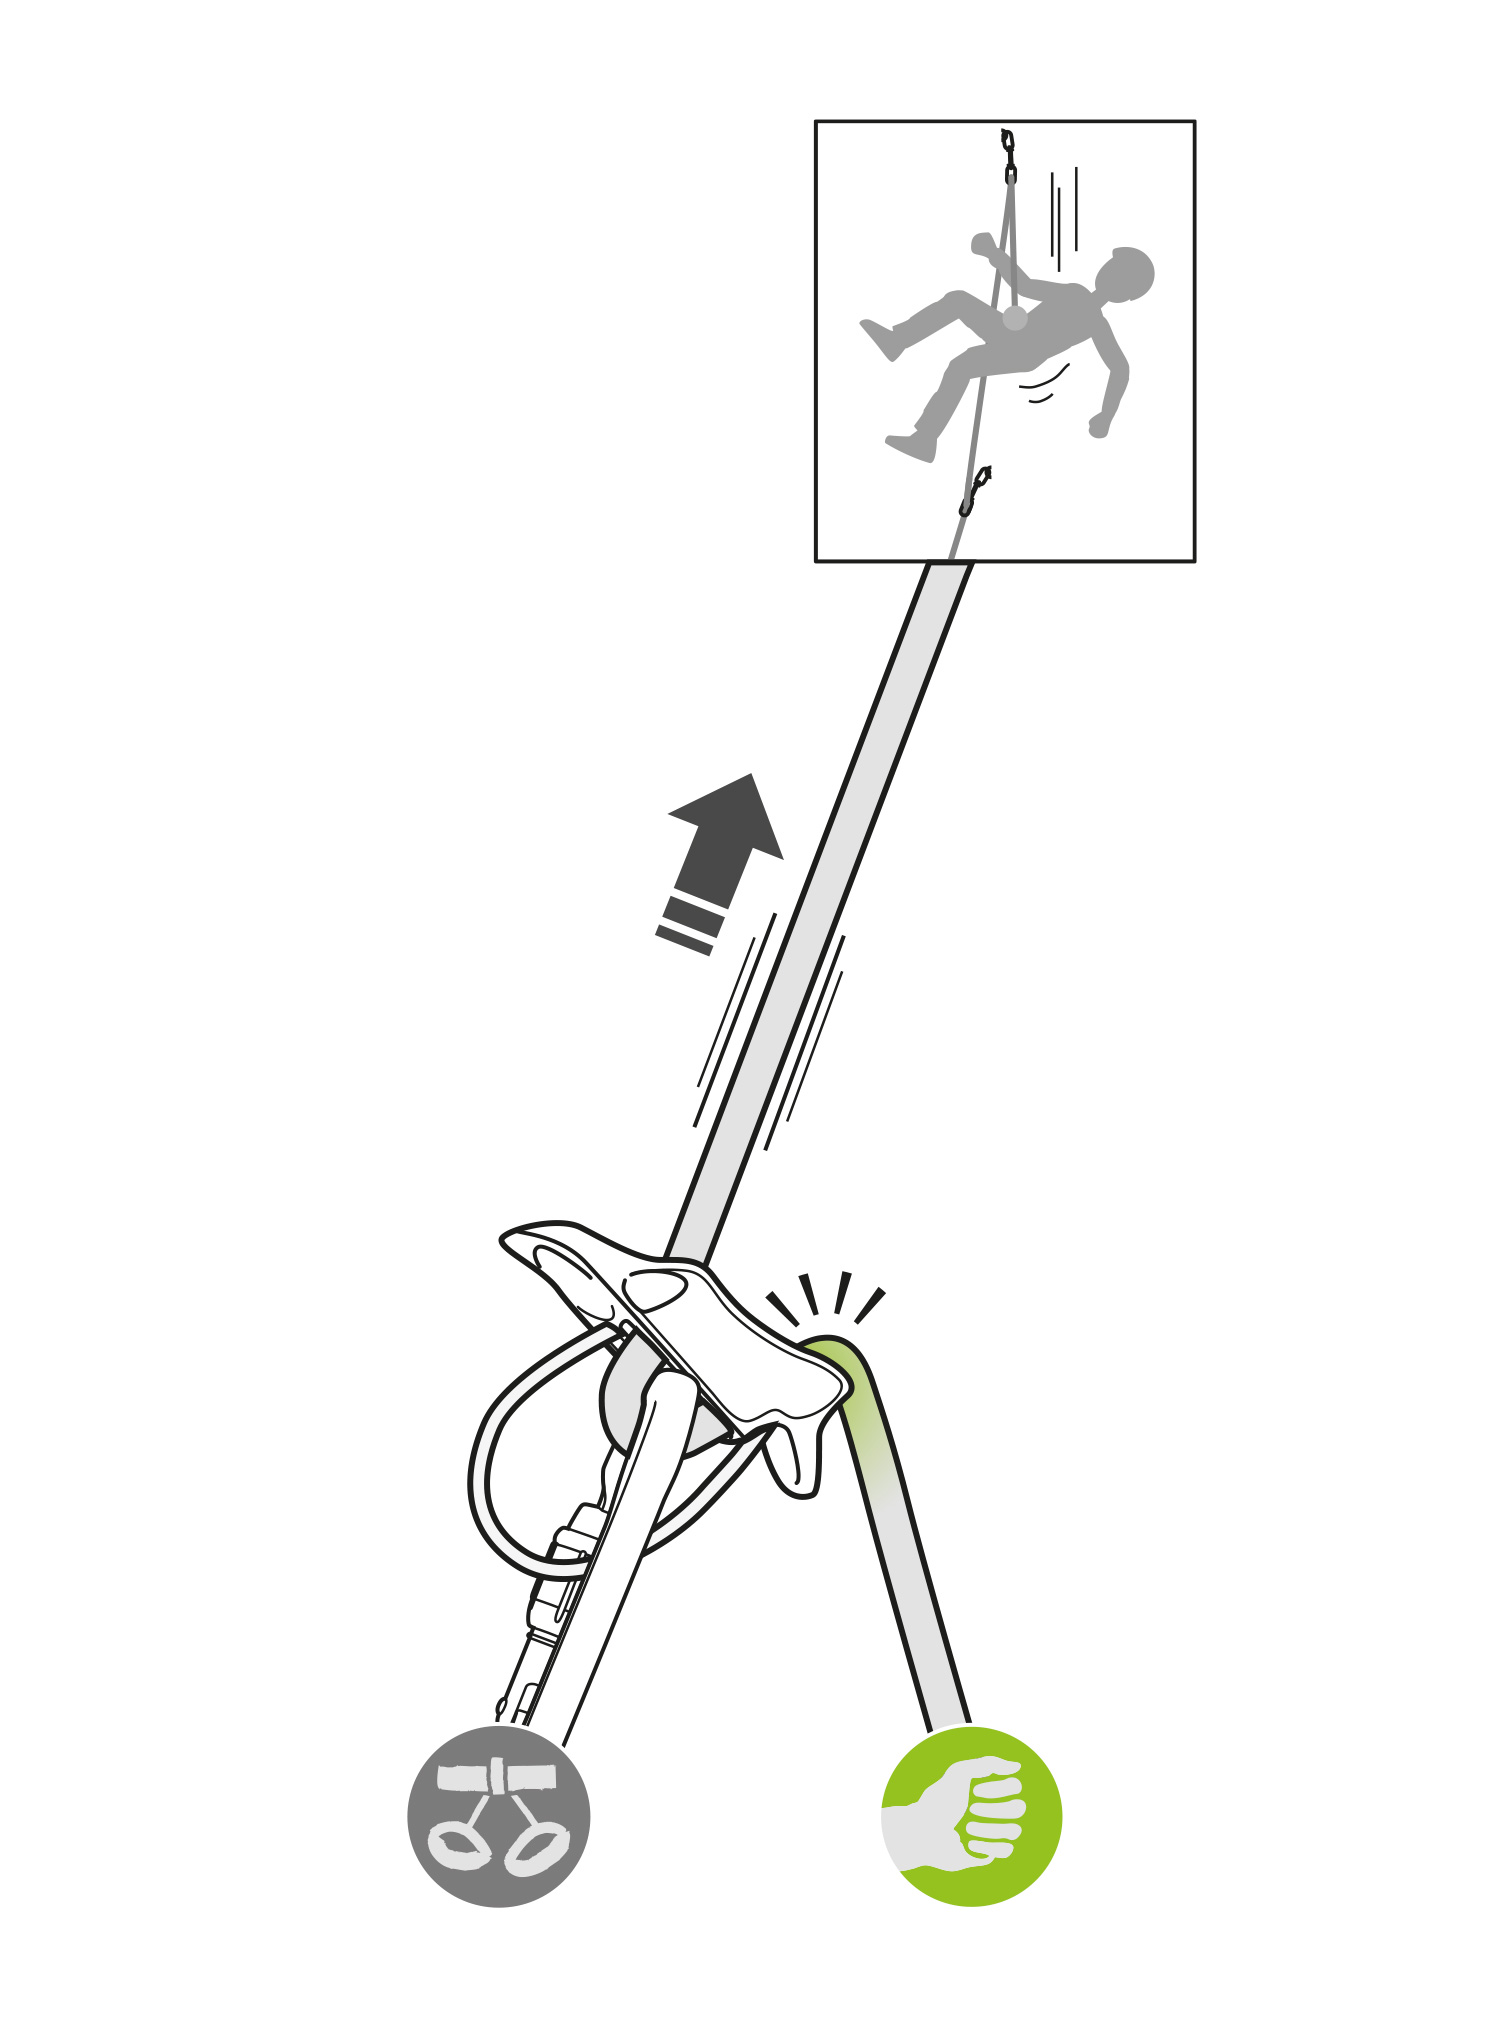 Belay/rappel Devices, working principle.